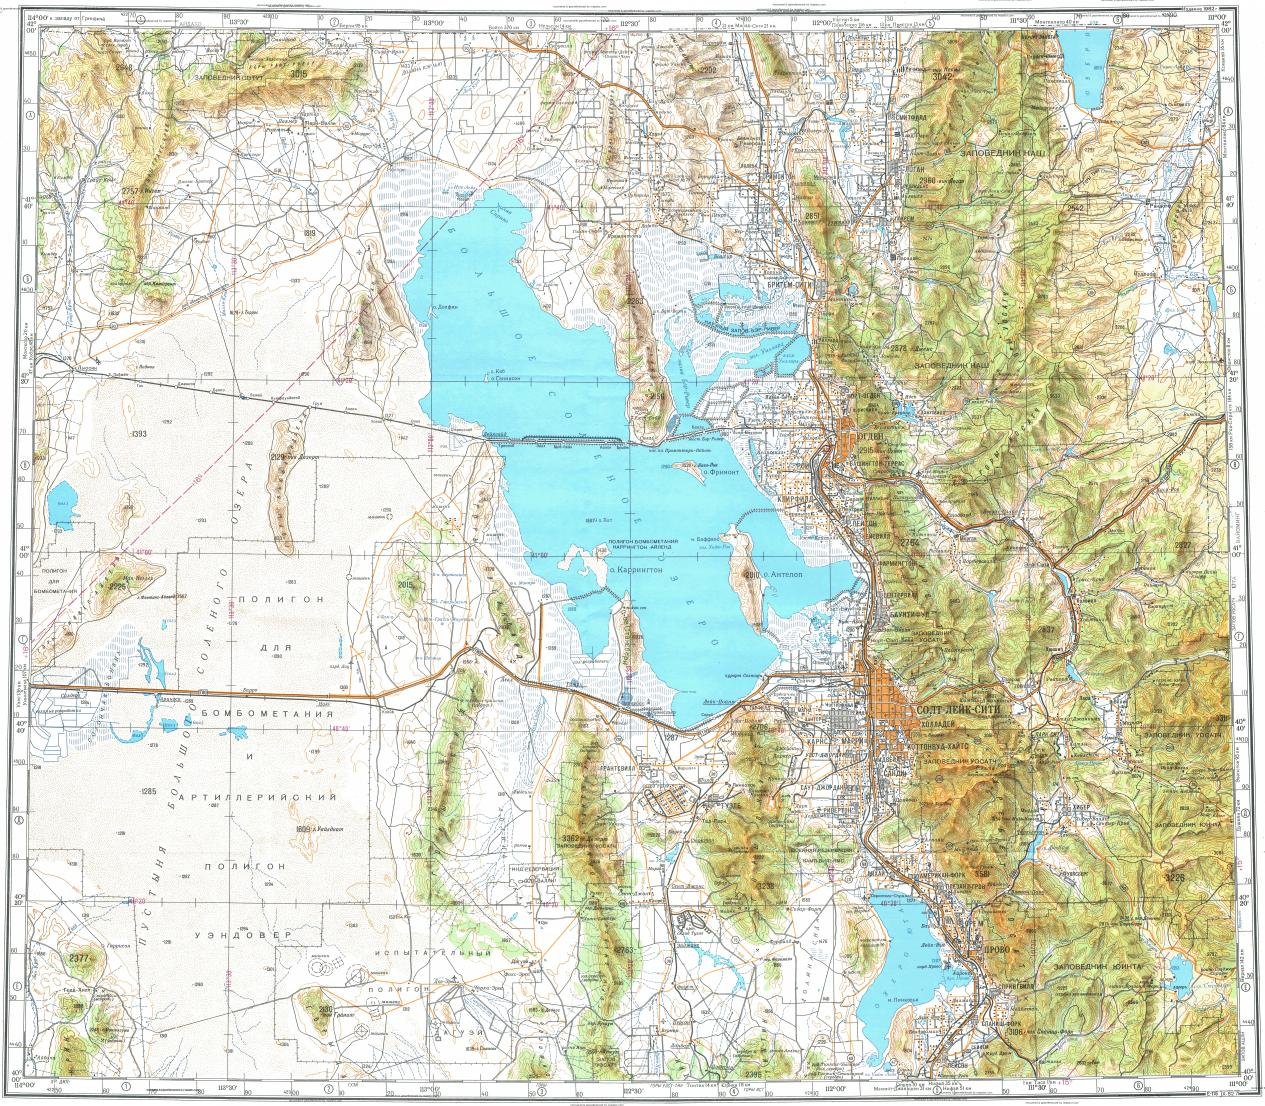 Download Topographic Map In Area Of Salt Lake City Provo West